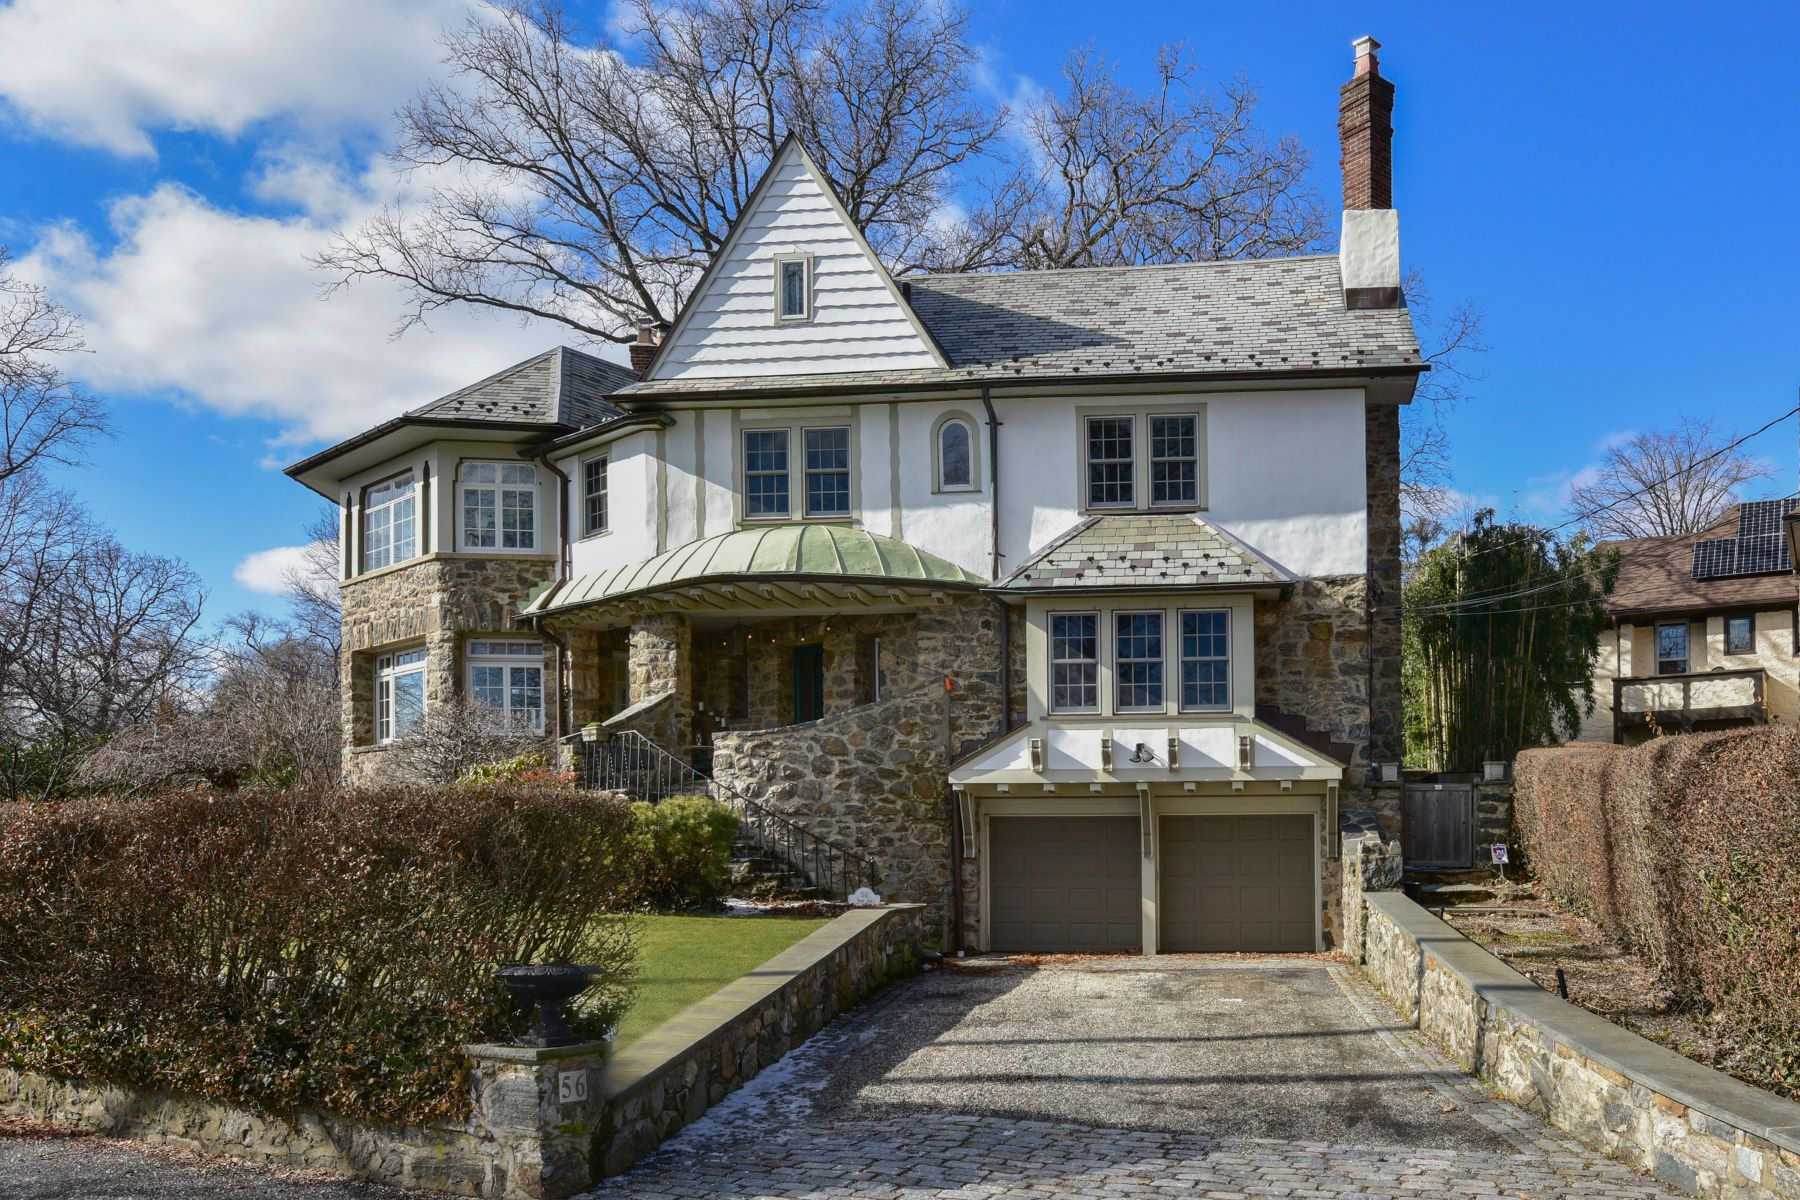 Single Family Home for Sale at Enchanting Waterviews on Manor Park 56 Park Avenue, Larchmont, New York, 10538 United States